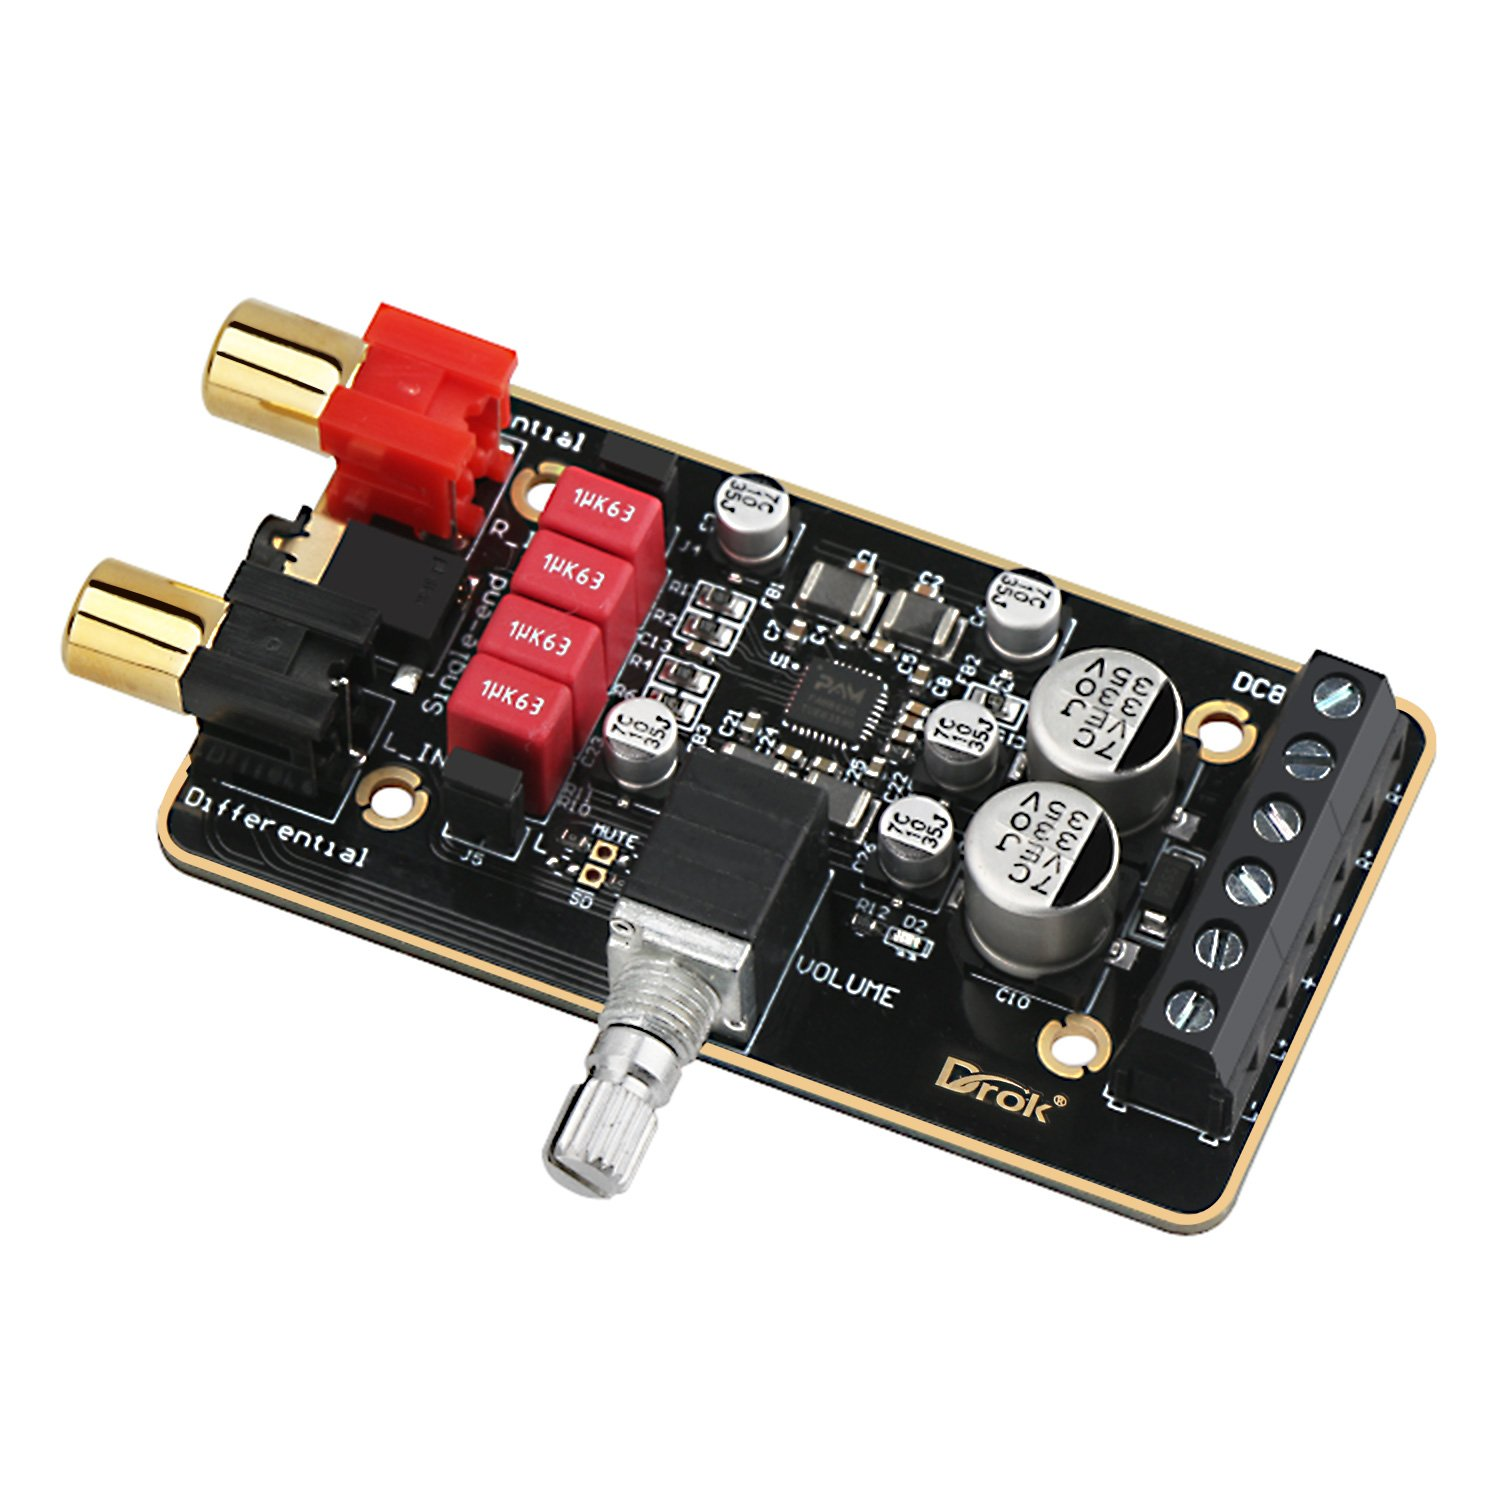 Cheap Class D Power Amplifier Circuit Find Dual Audio Get Quotations 12v Board Drok Pam8620 Digital Stereo Amp Module 15w 20 Channel